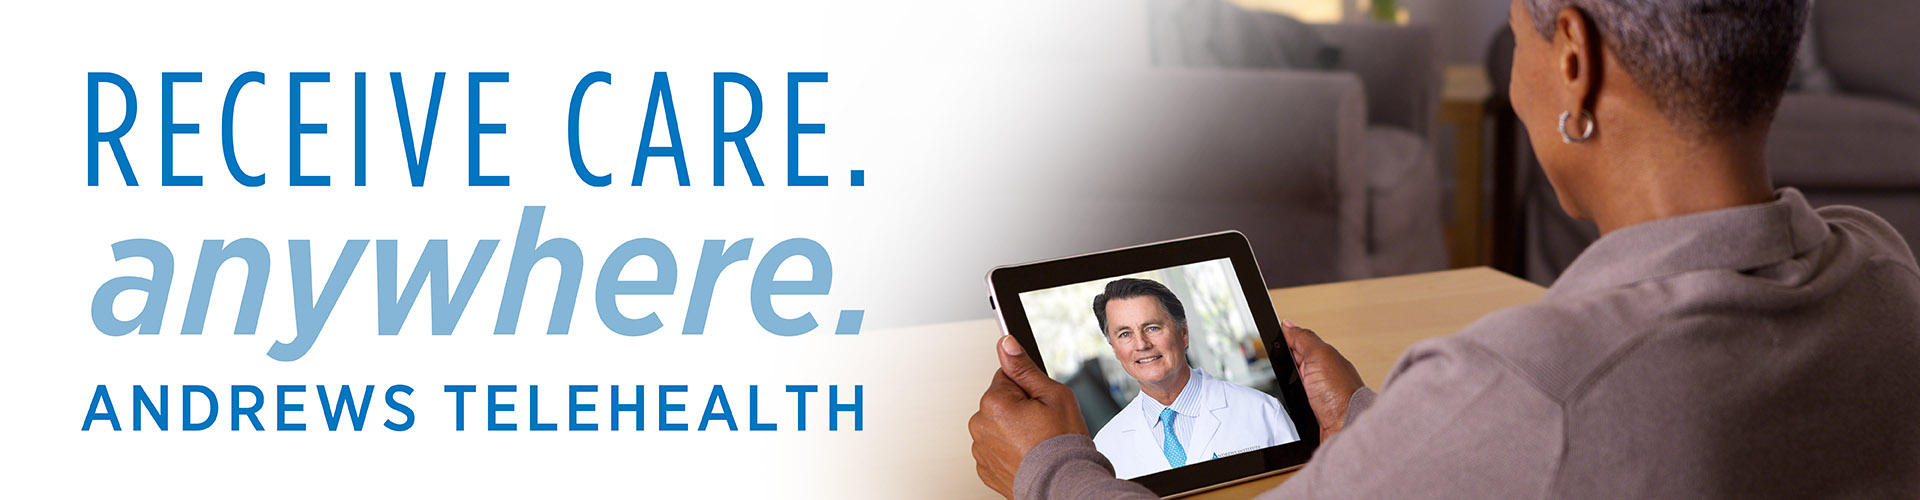 Andrews Institute Telehealth care anywhere